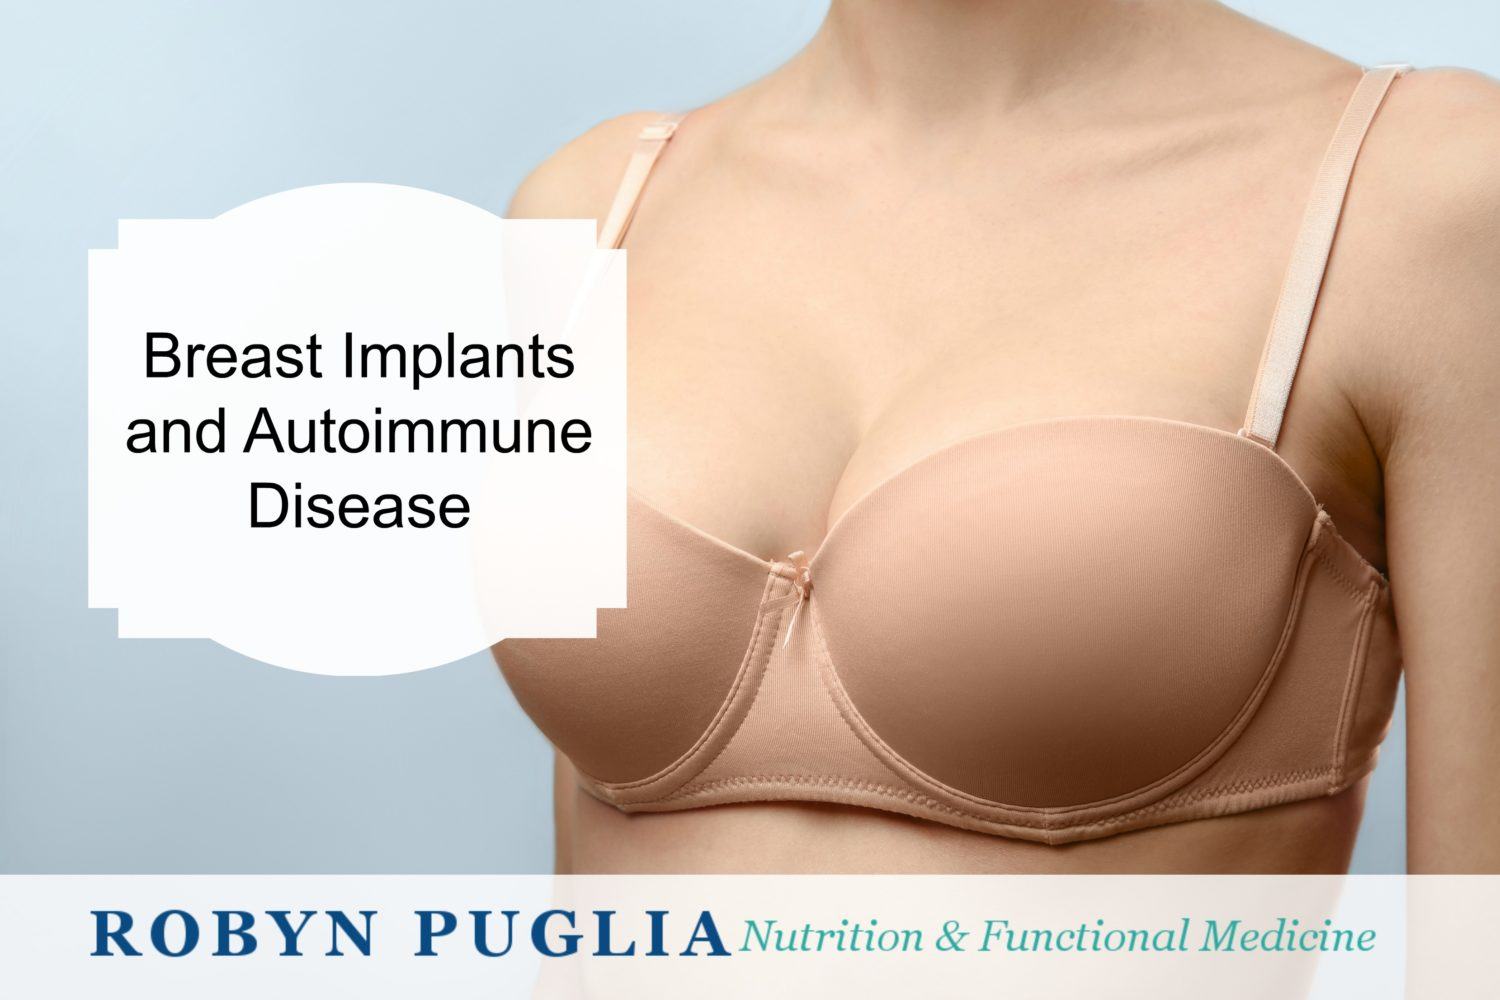 Breast Implants and Autoimmune Disease